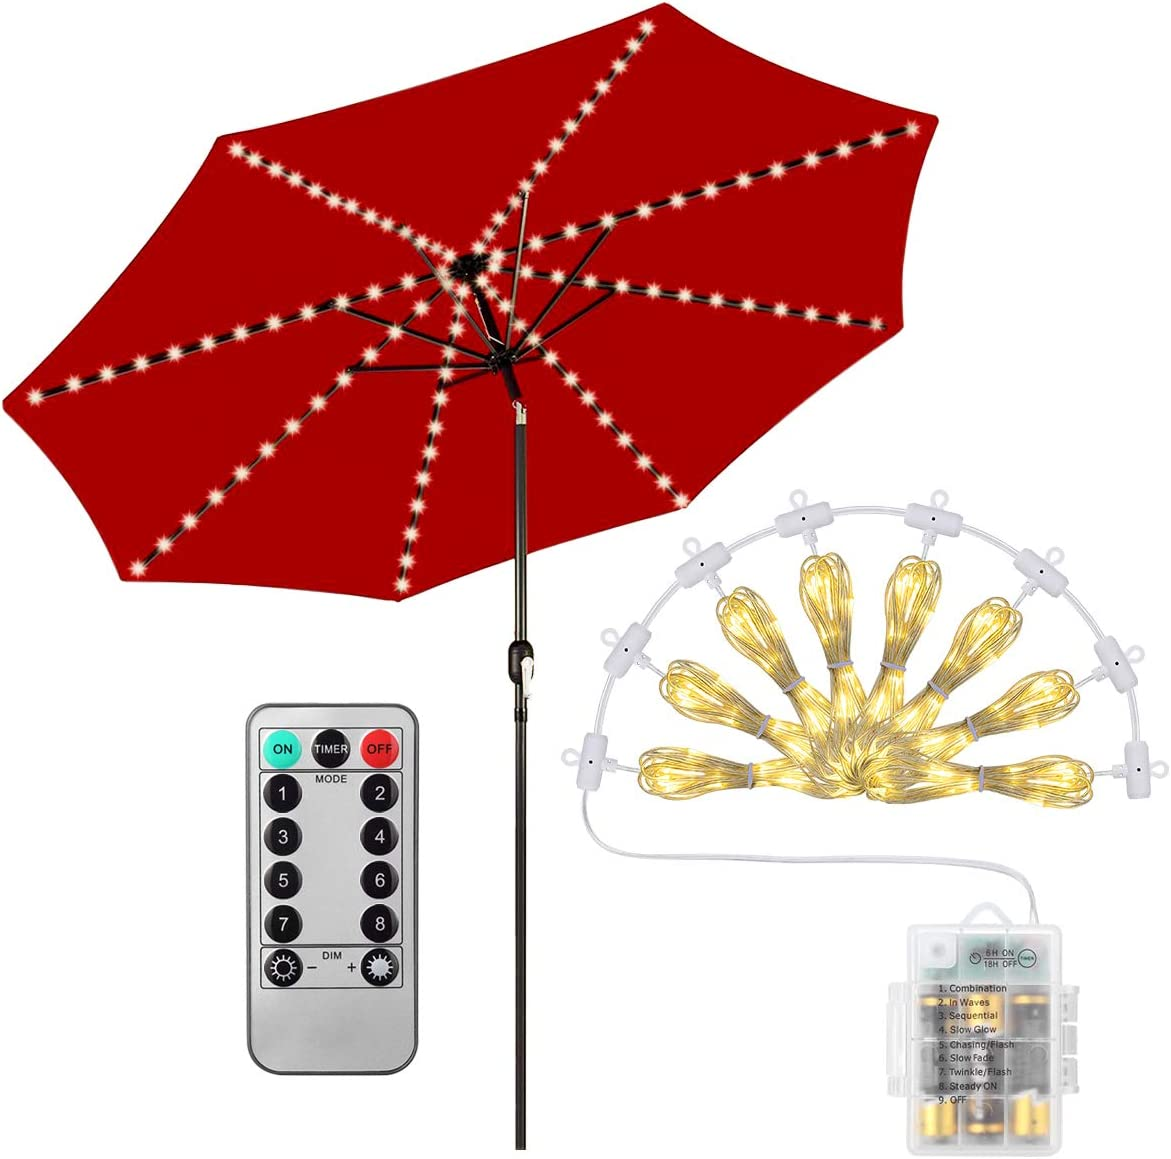 Patio LED Umbrella String Lights, 104 LED String Lights with Remote Control, 8 Lighting Mode Umbrella Lights Battery Operated Waterproof Outdoor Lighting for Patio Umbrellas Camping Tents or Outdoor